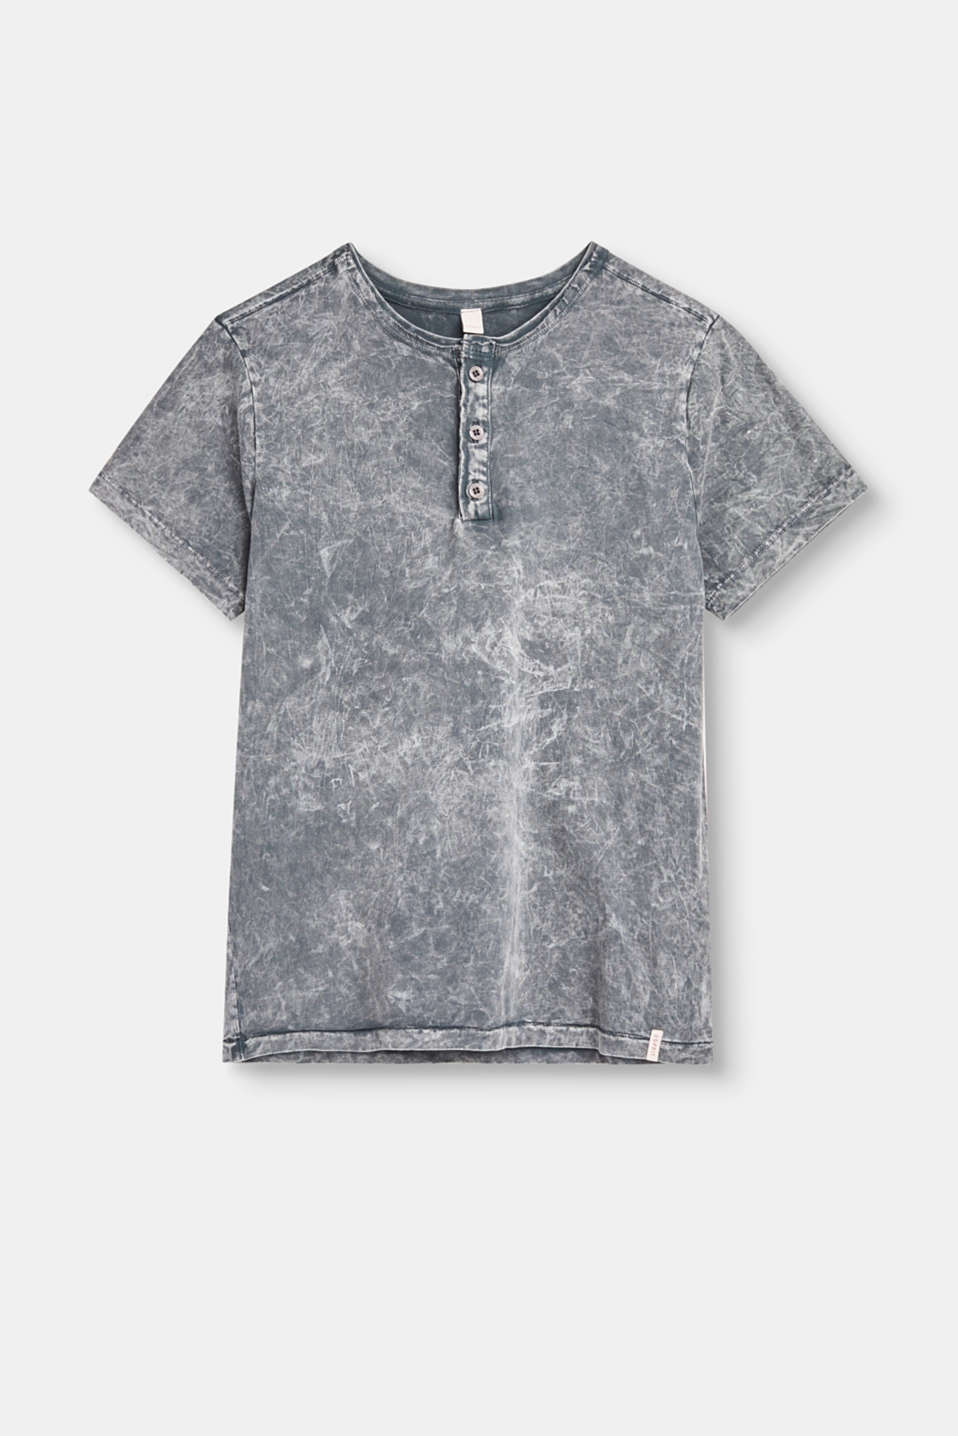 Unmistakable style: the garment-washed effect in a marble look and a button-fastening round neckline give this T-shirt a particularly cool look.